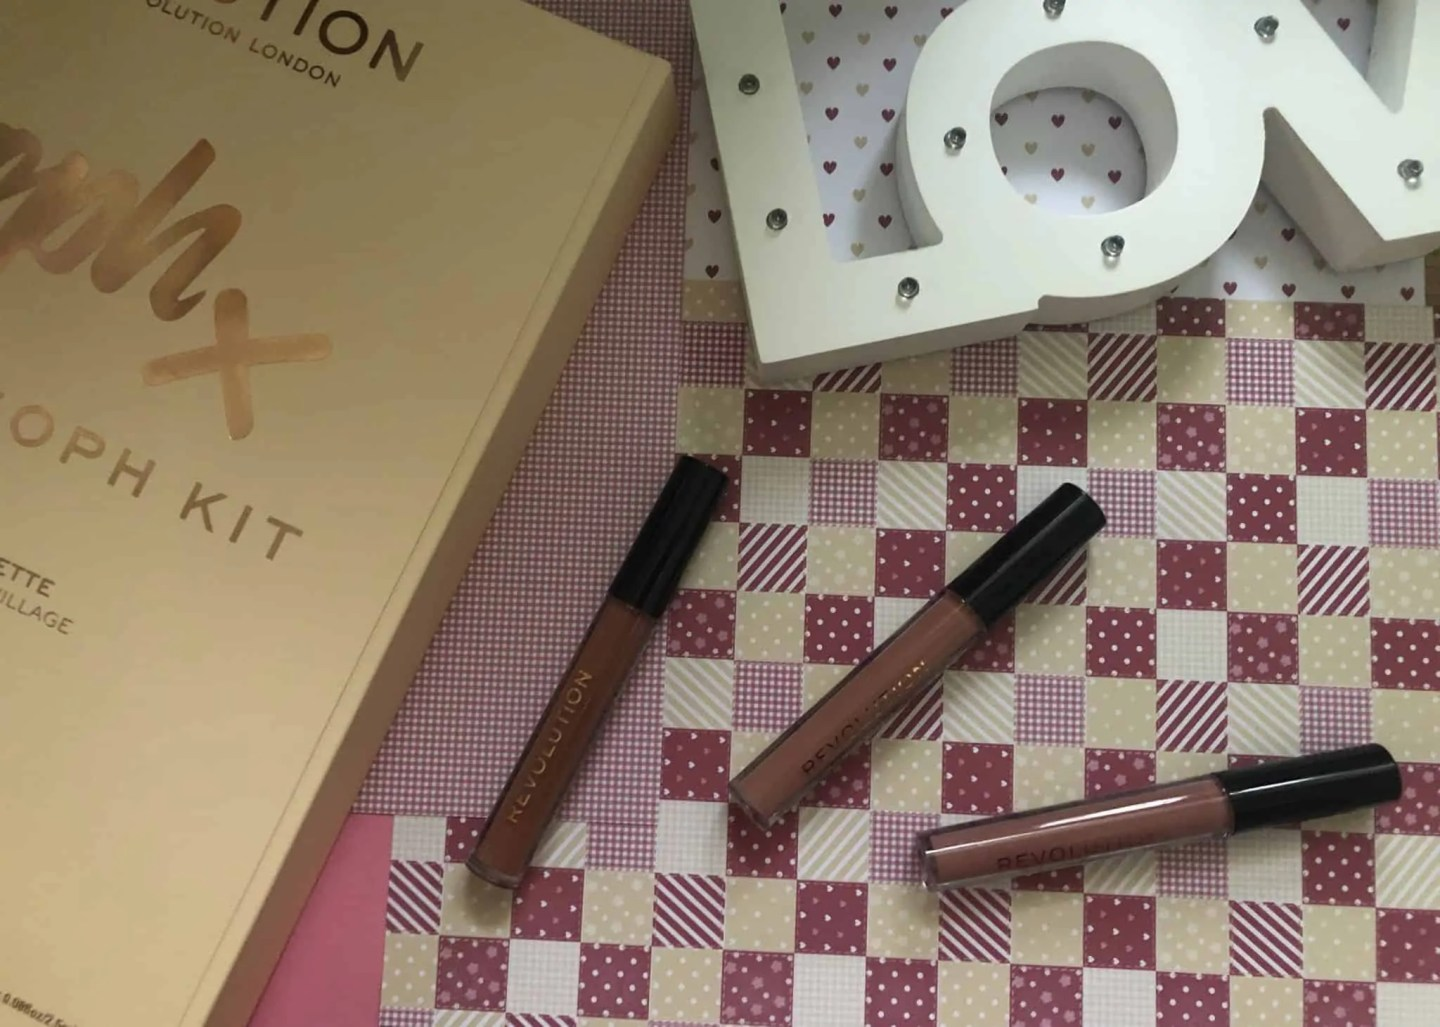 Win Revolution Totally Soph kit revolution lip glosses